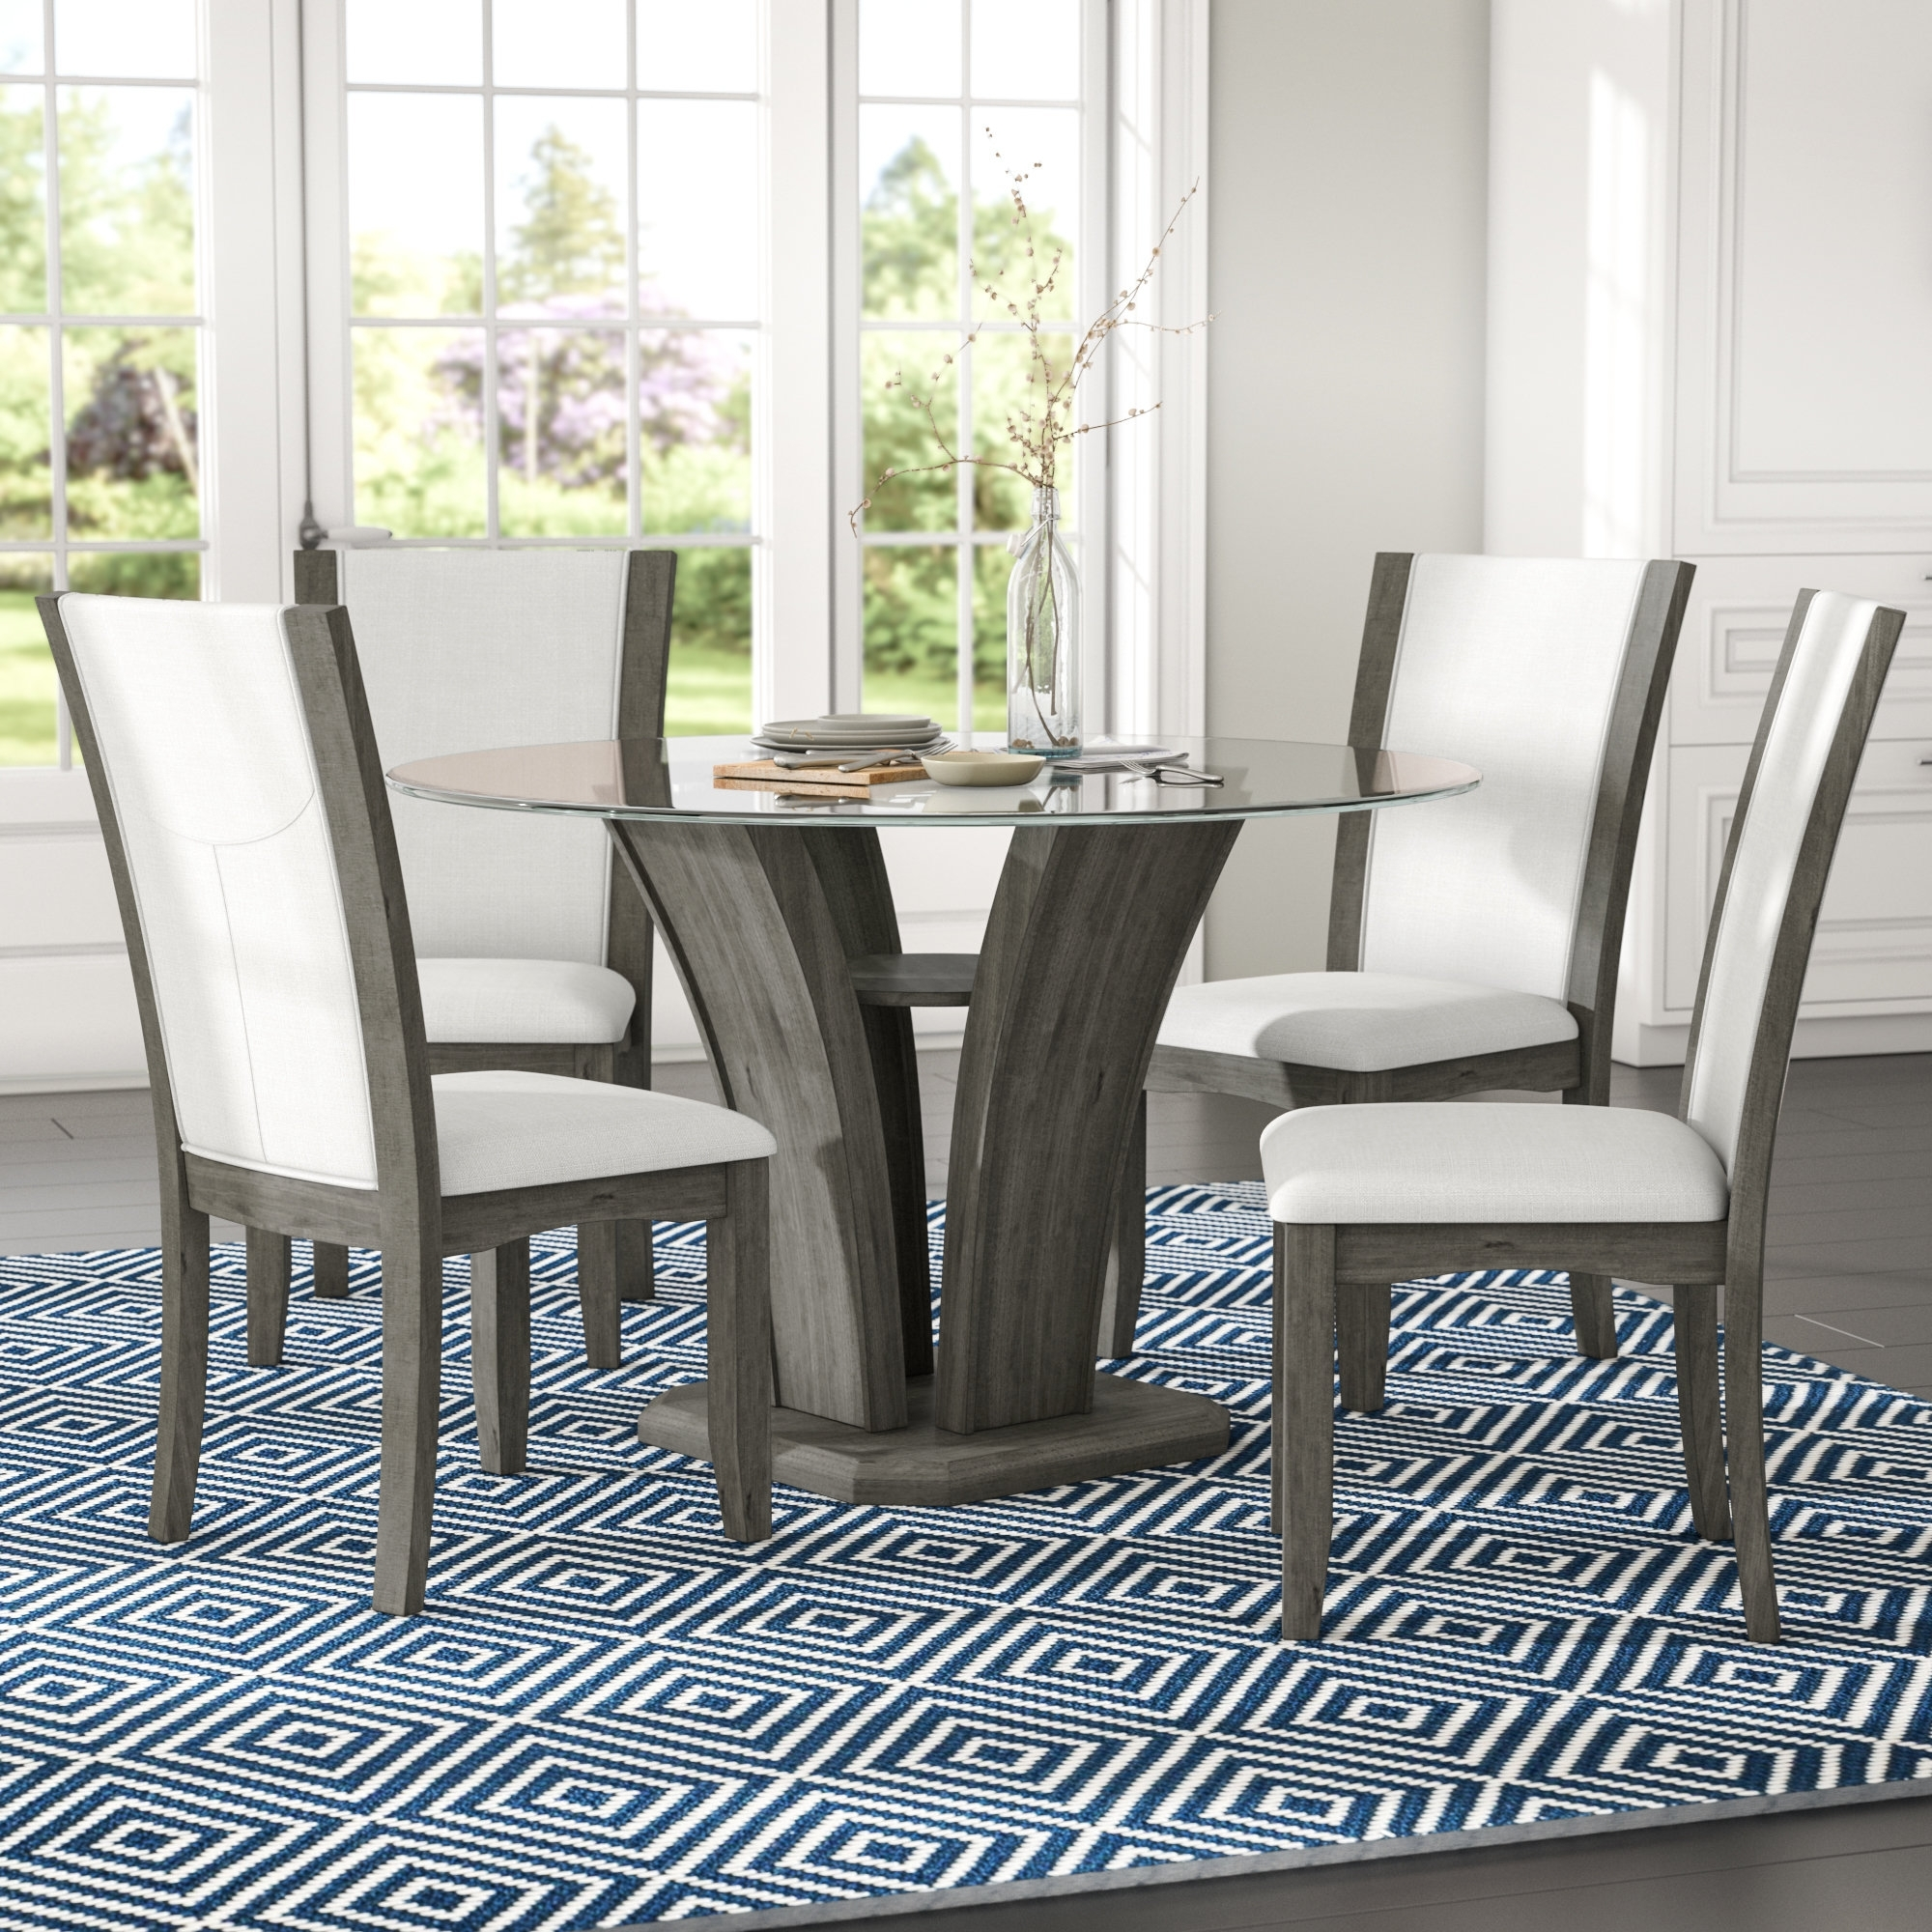 Brayden Studio Kangas 5 Piece Glass Top Dining Set & Reviews | Wayfair Throughout Most Recent Laurent 5 Piece Round Dining Sets With Wood Chairs (View 5 of 20)